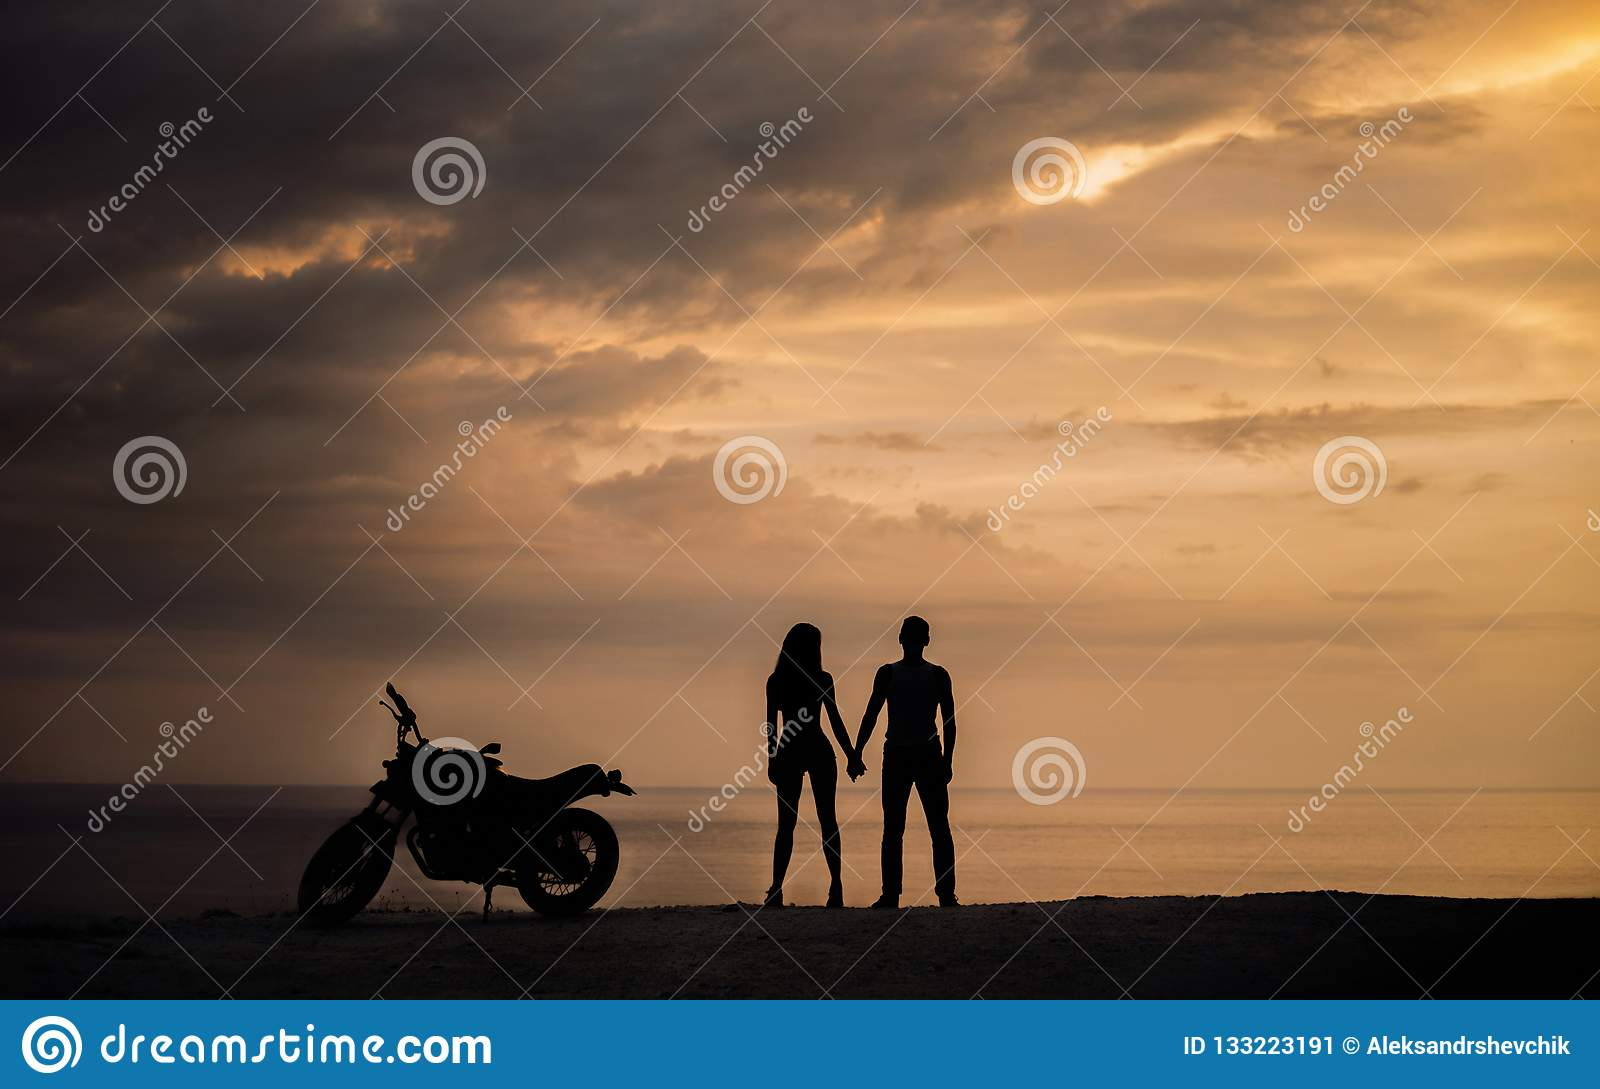 Silhouette of Couple standing with a motorbike in the sunset